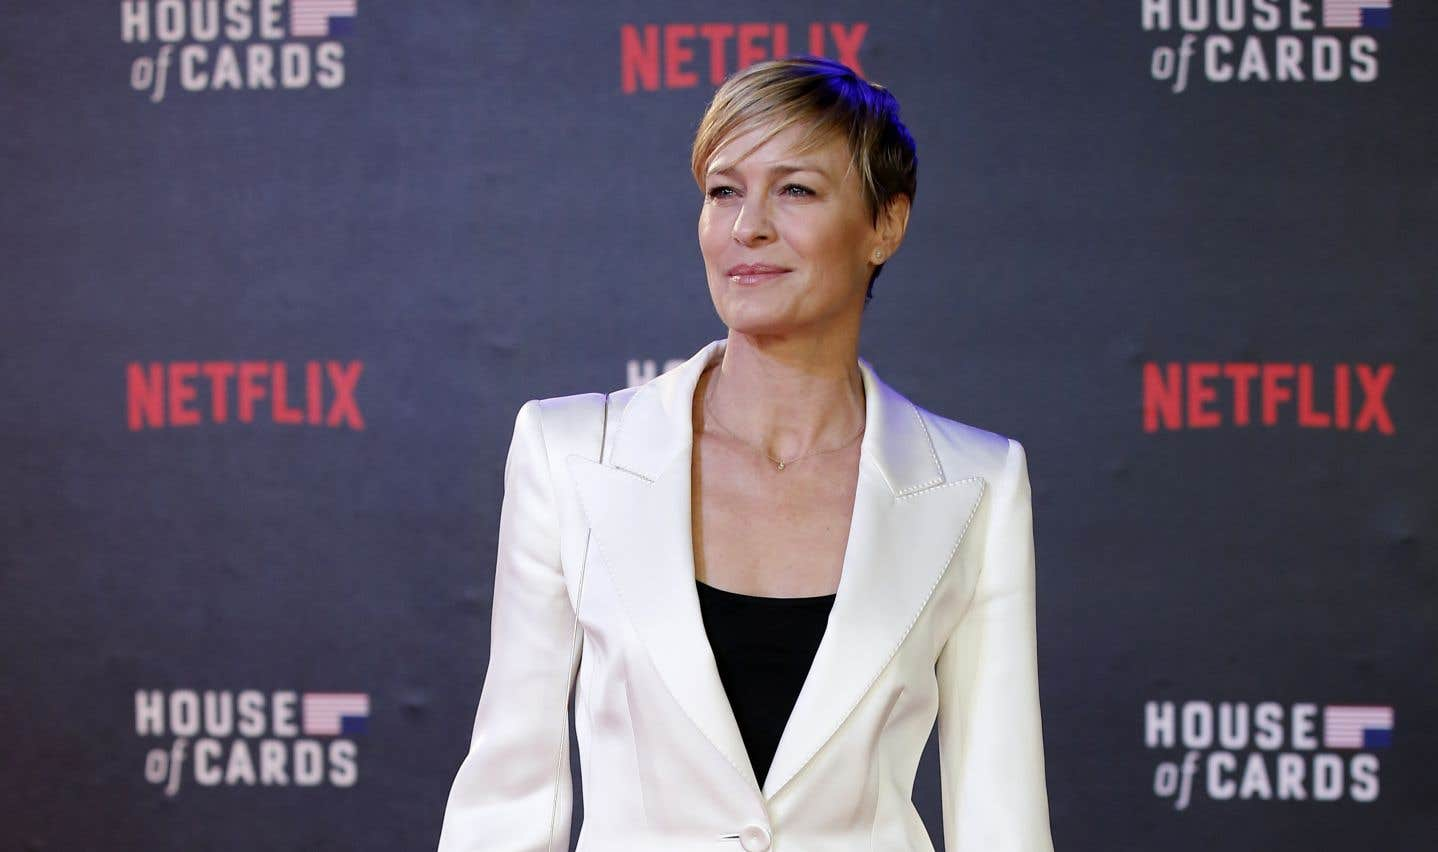 La production de «House of Cards» reprendra début 2018